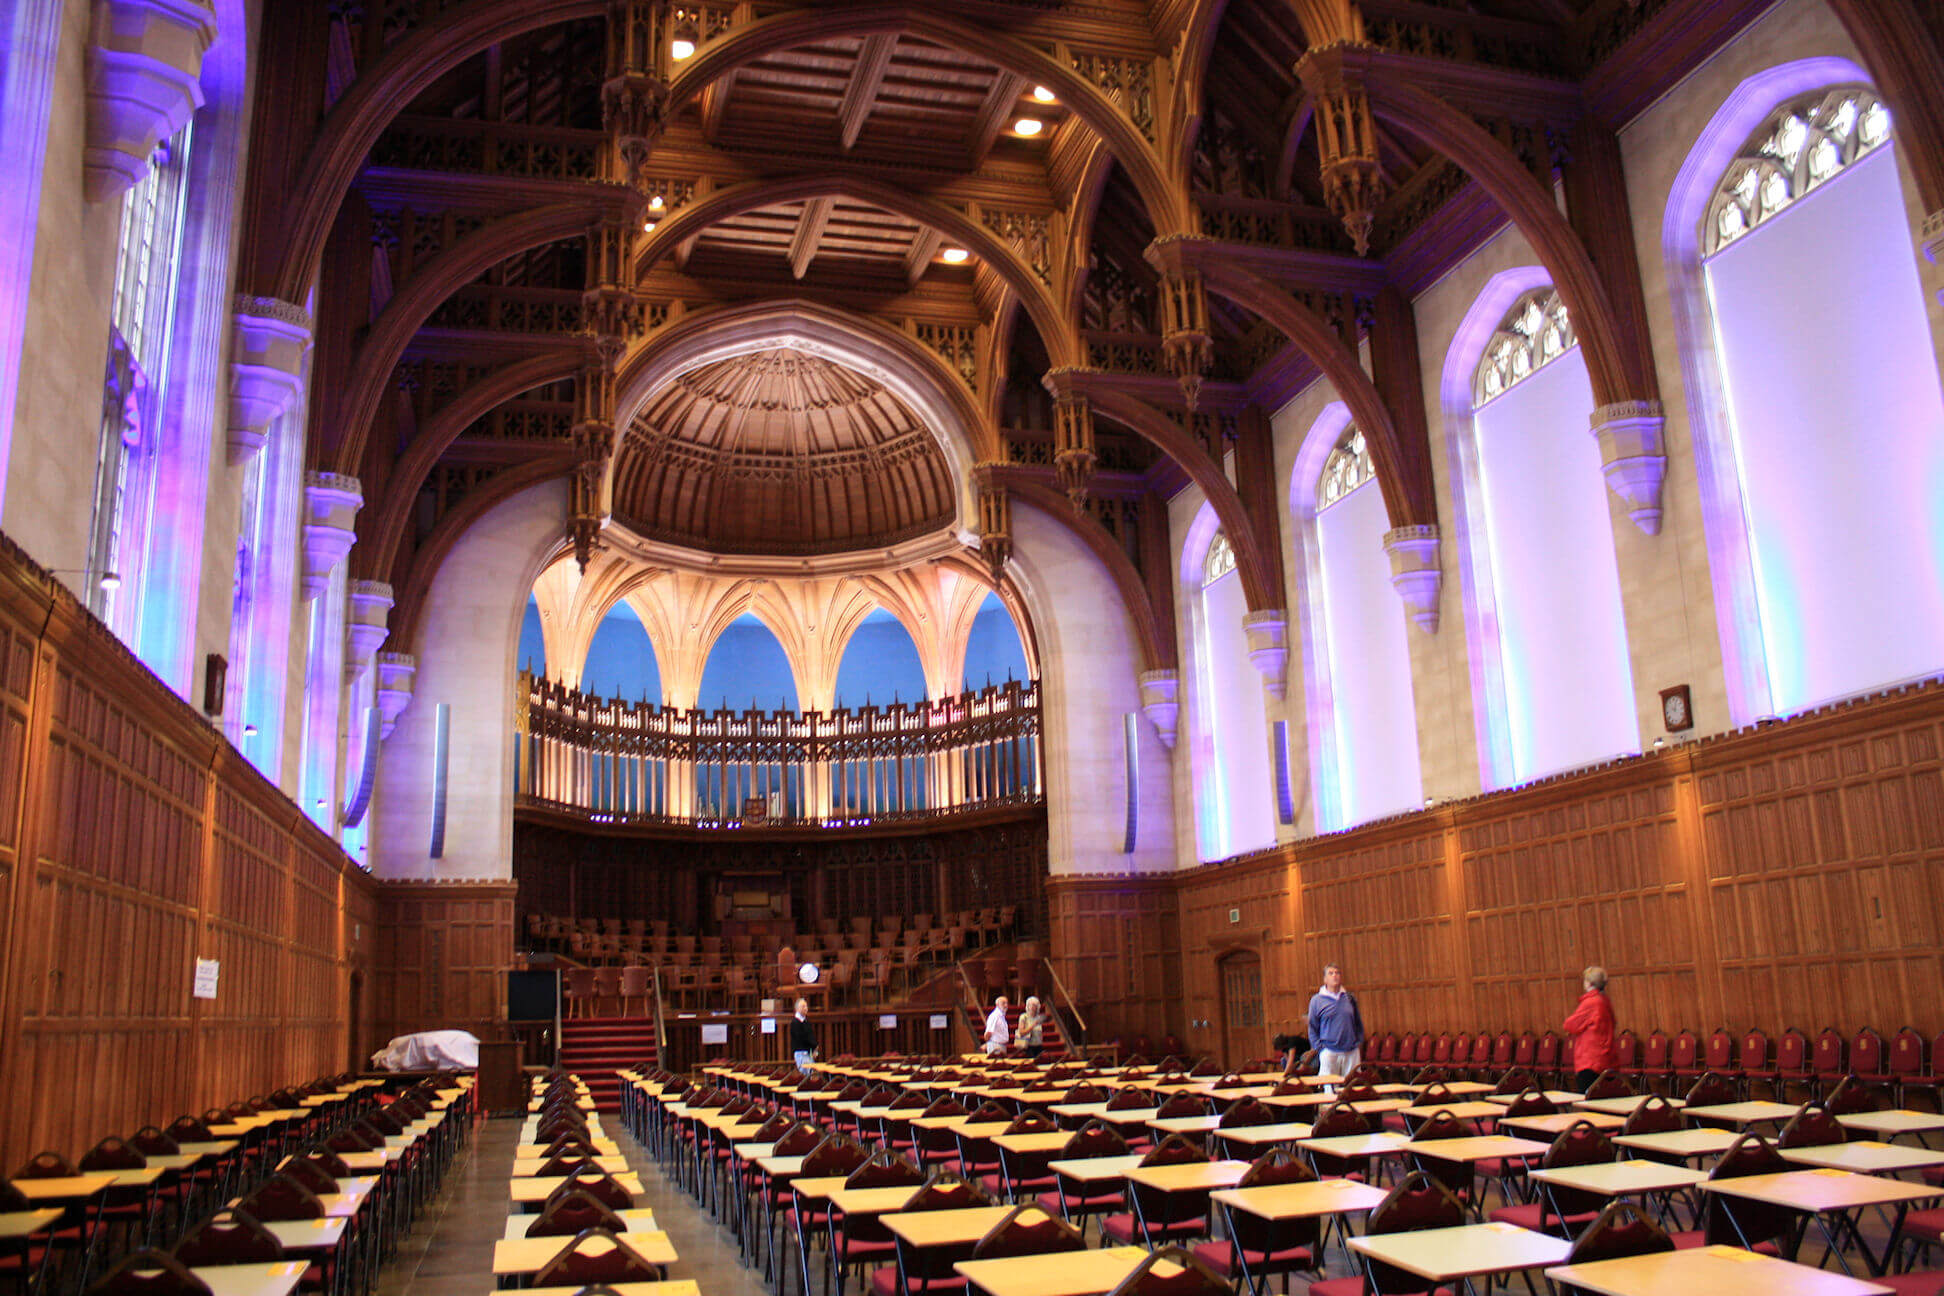 The Great Hall. A stunning space used for exams, events and lectures.